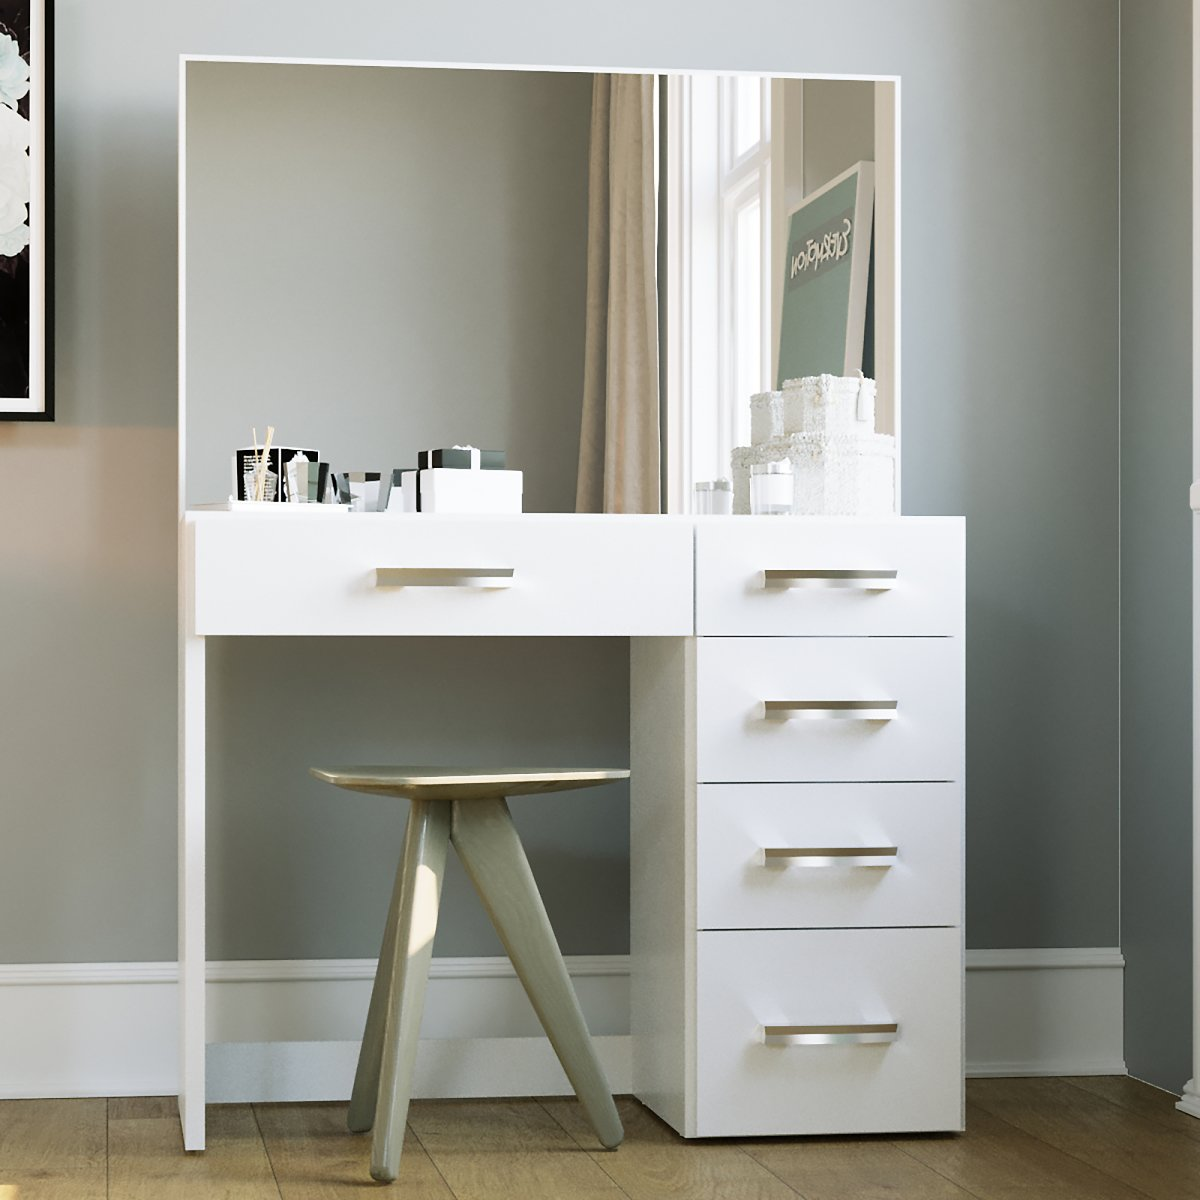 Boahaus Matilda Modern Vanity Table with Mirror and 5 Drawers, White Finish